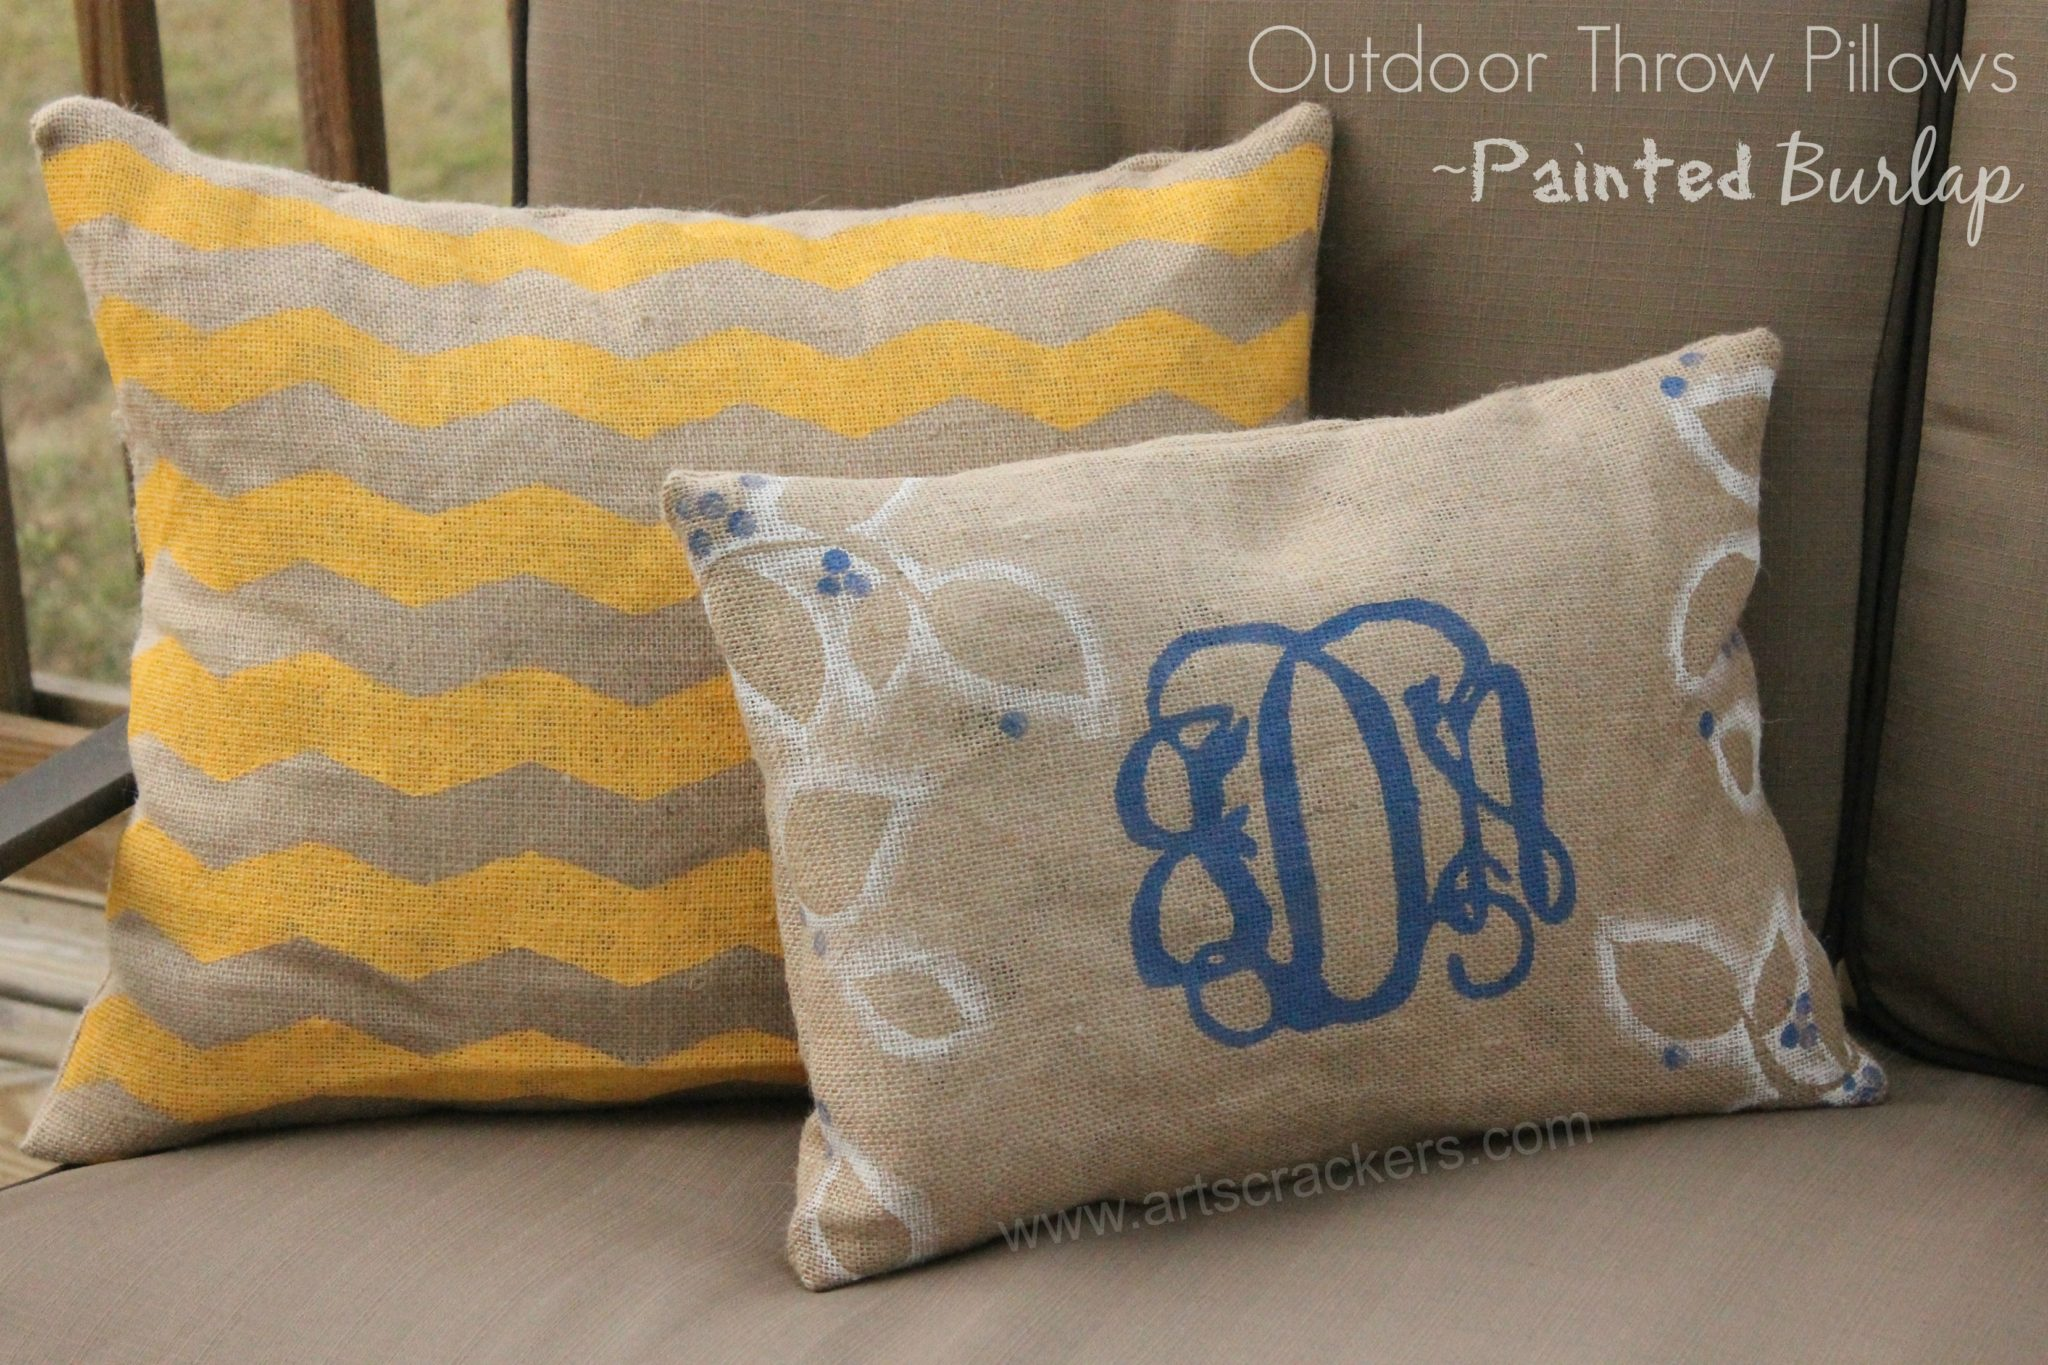 diy painted burlap outdoor throw pillows arts crackers